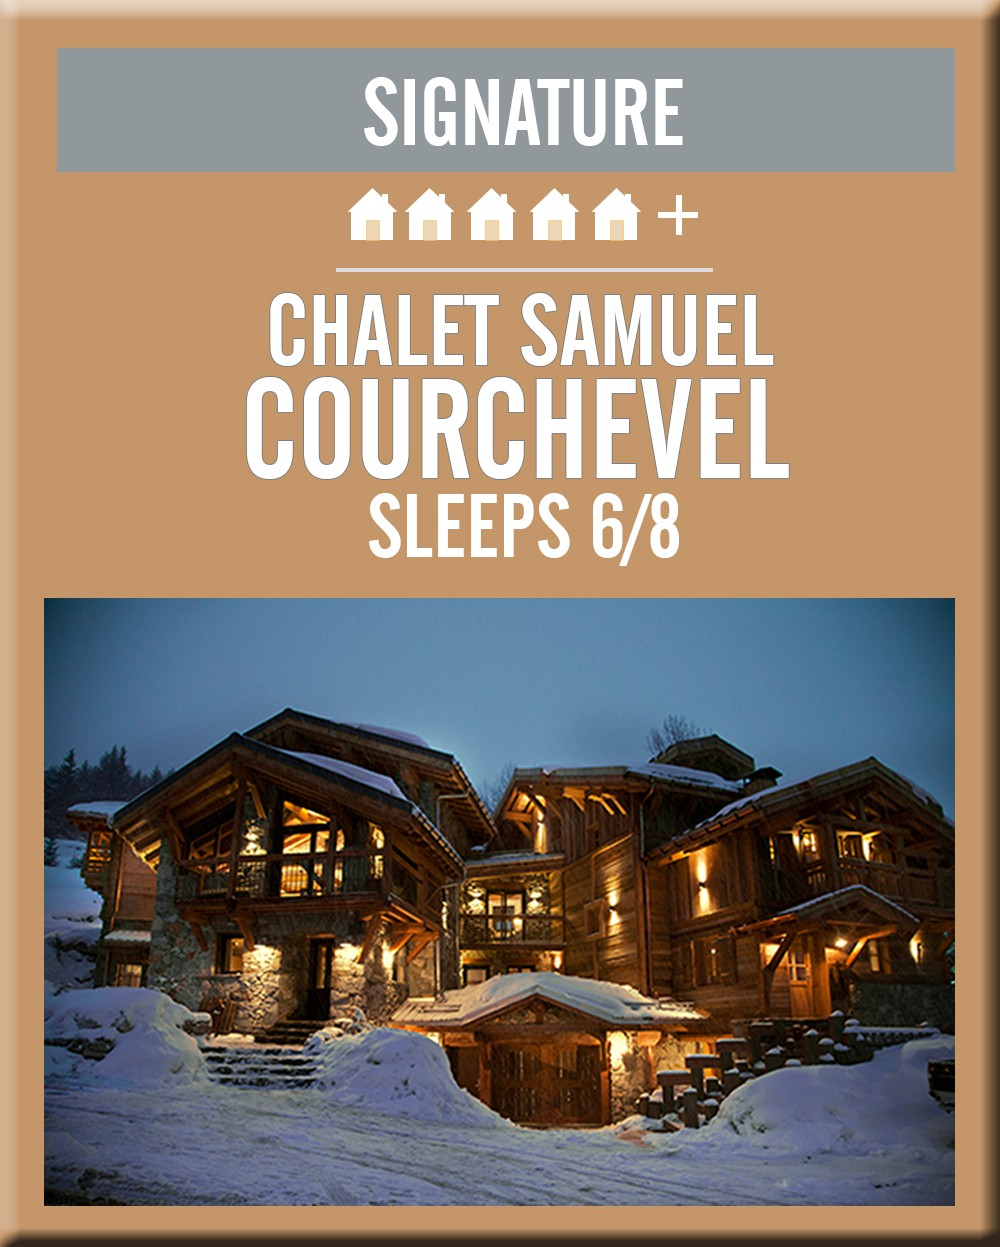 France chalet samuel courchevel exterior night